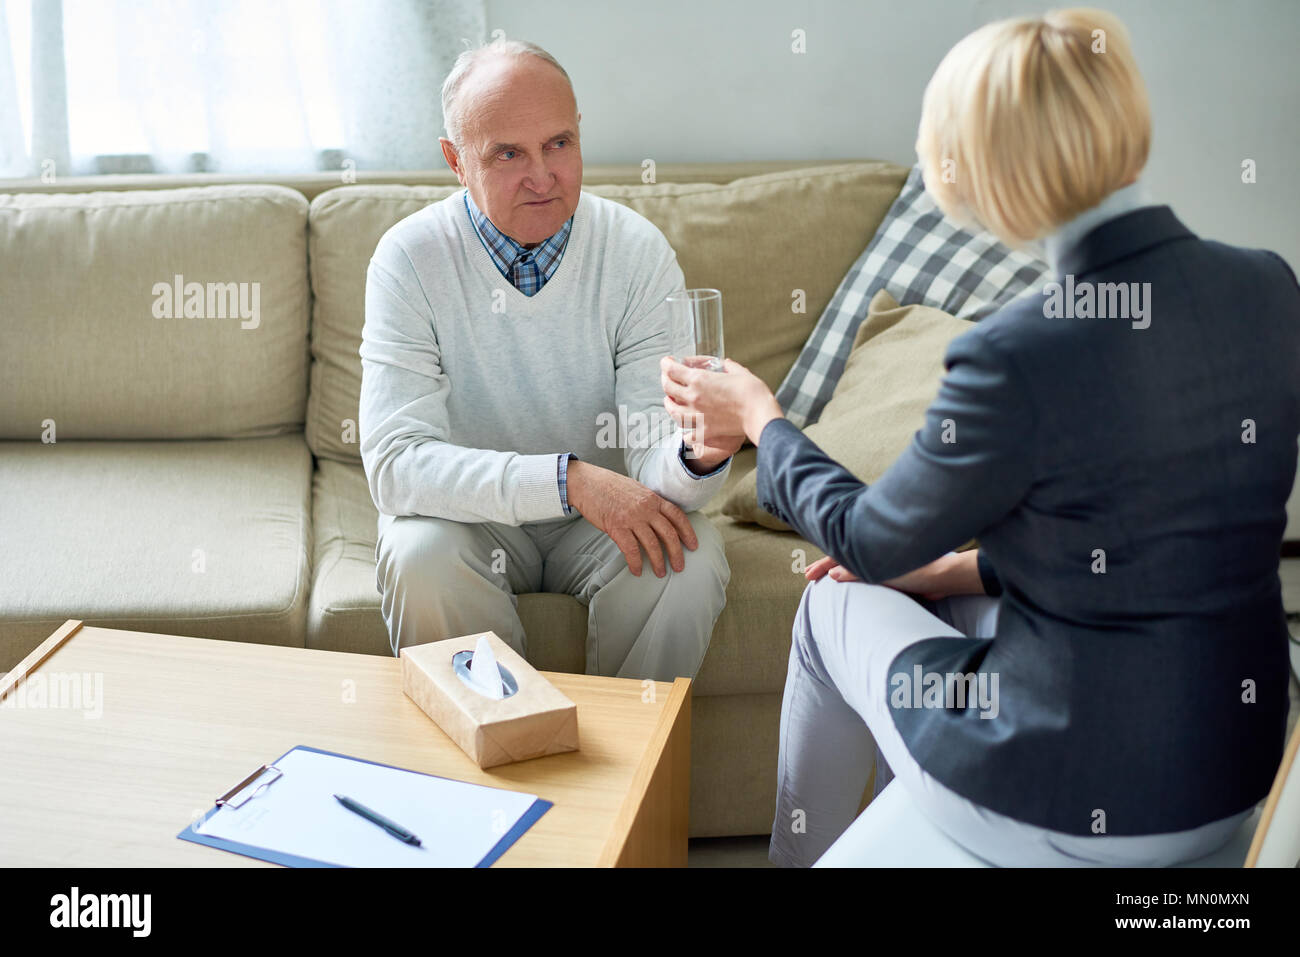 Anonymous therapist giving glass of water to elderly man having consultation in assisted living home. - Stock Image